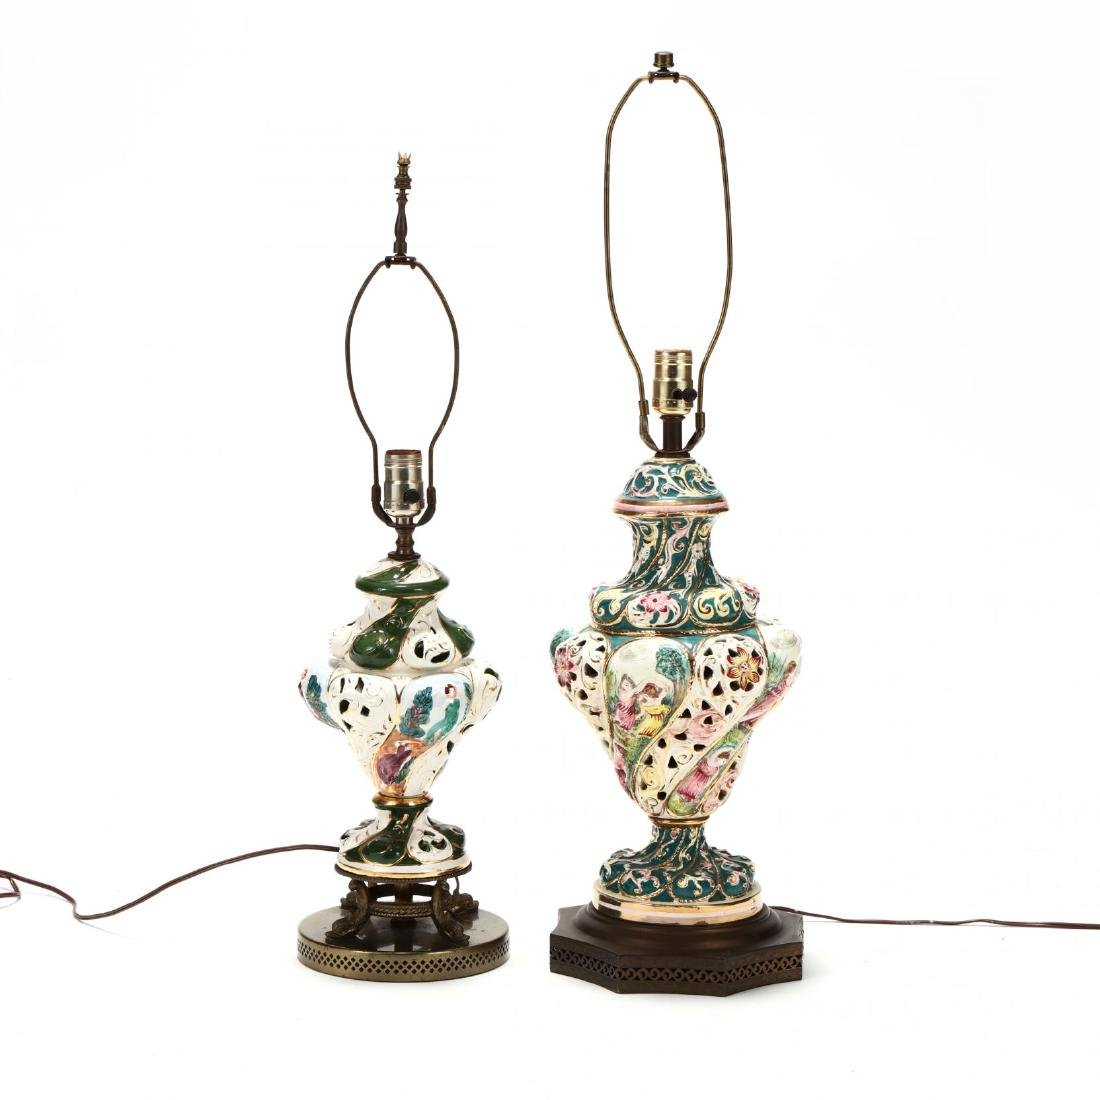 Two Capodimonte Porcelain Table Lamps